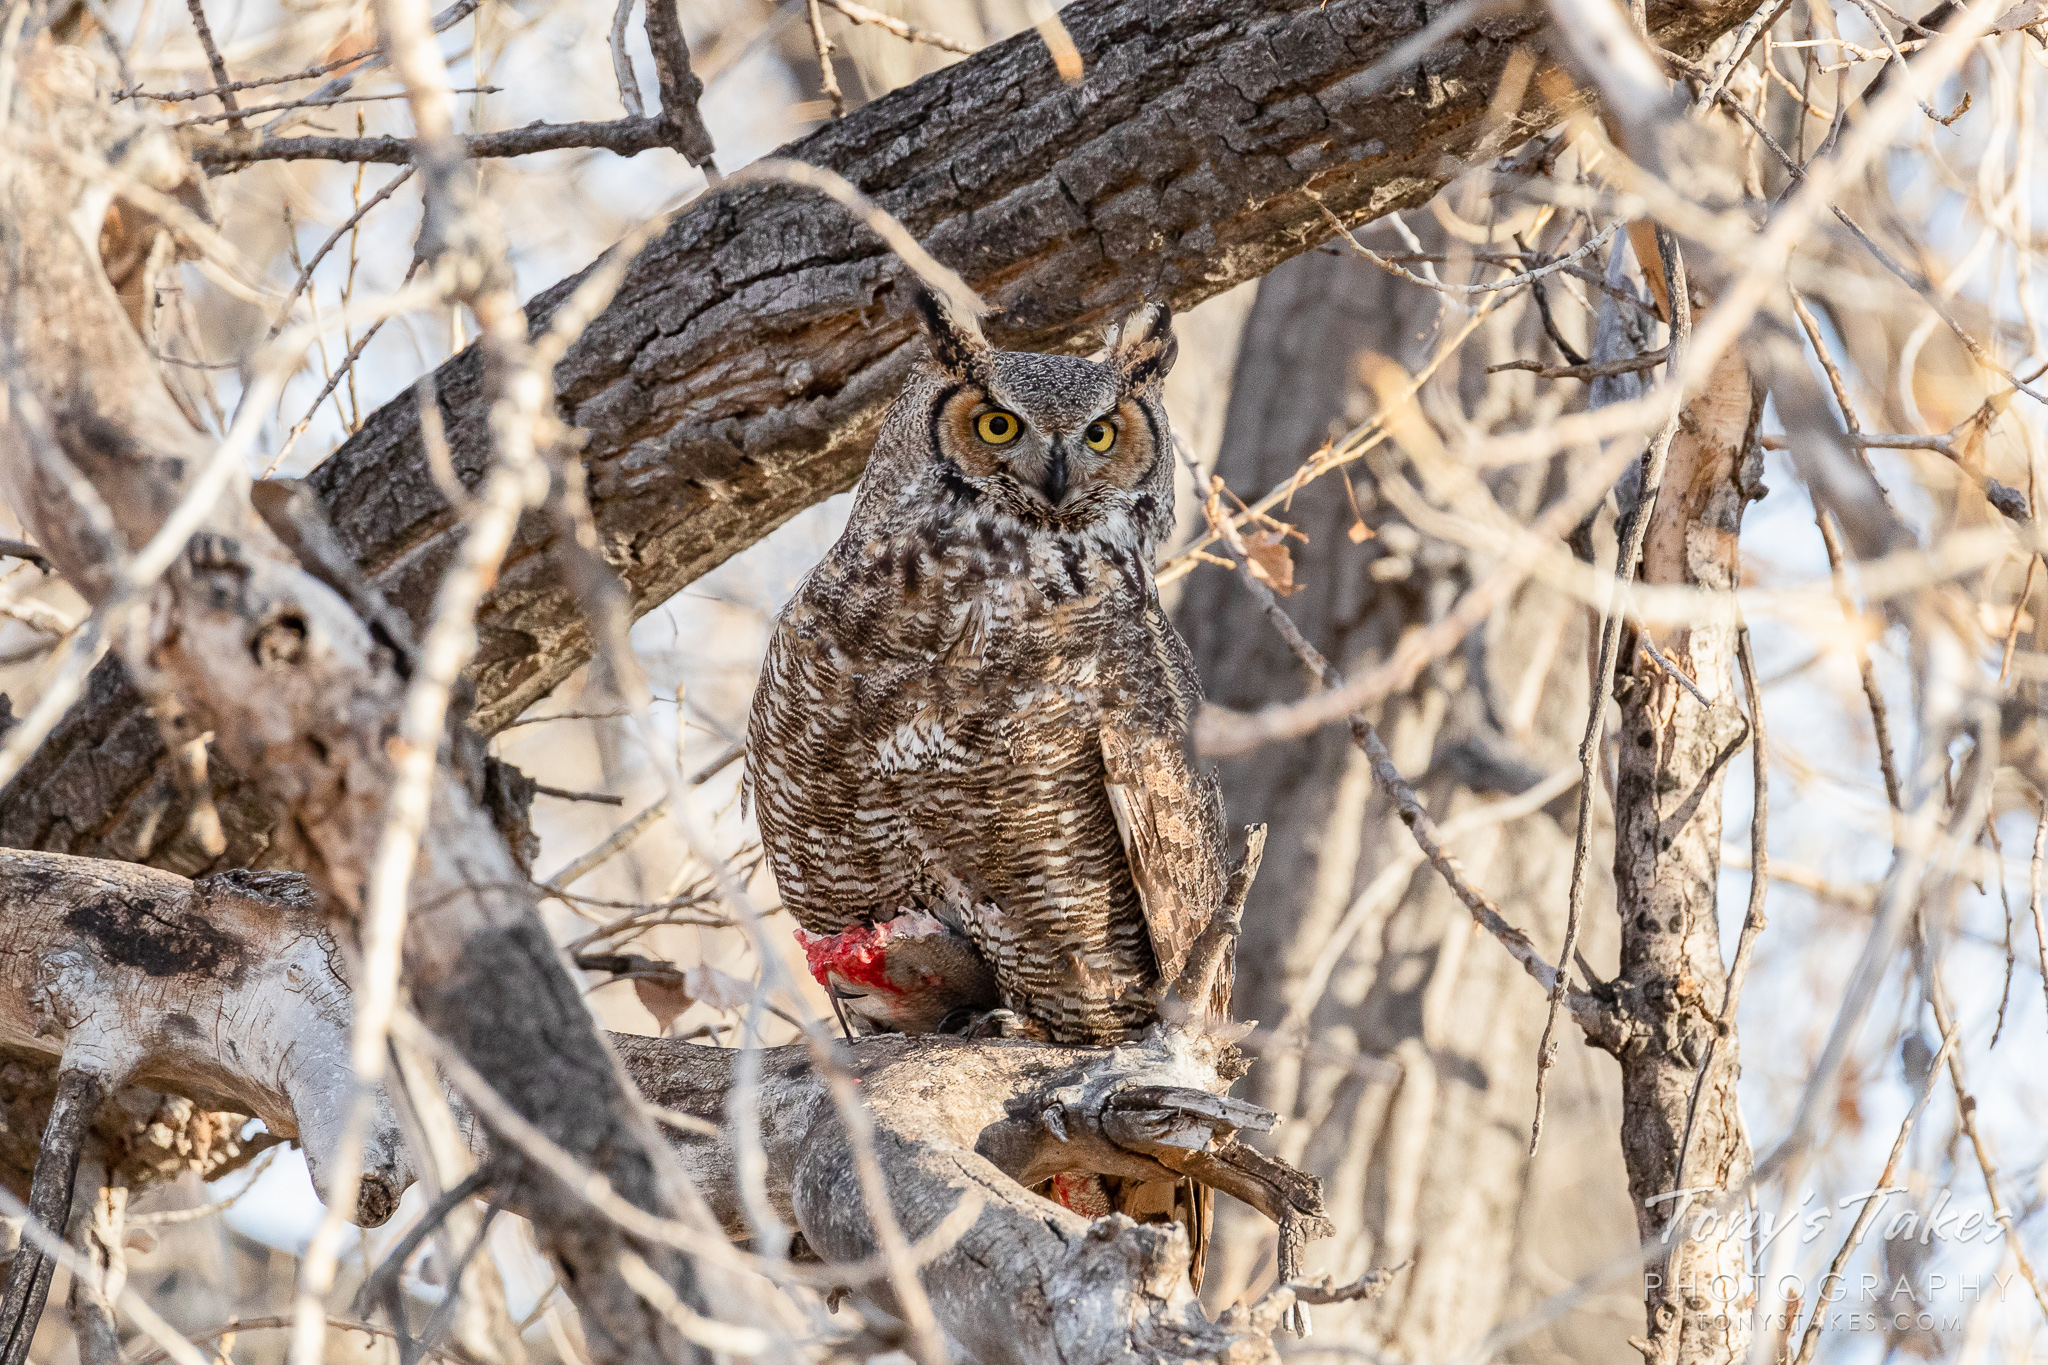 A great horned owl guards a fish it was eating. (© Tony's Takes)